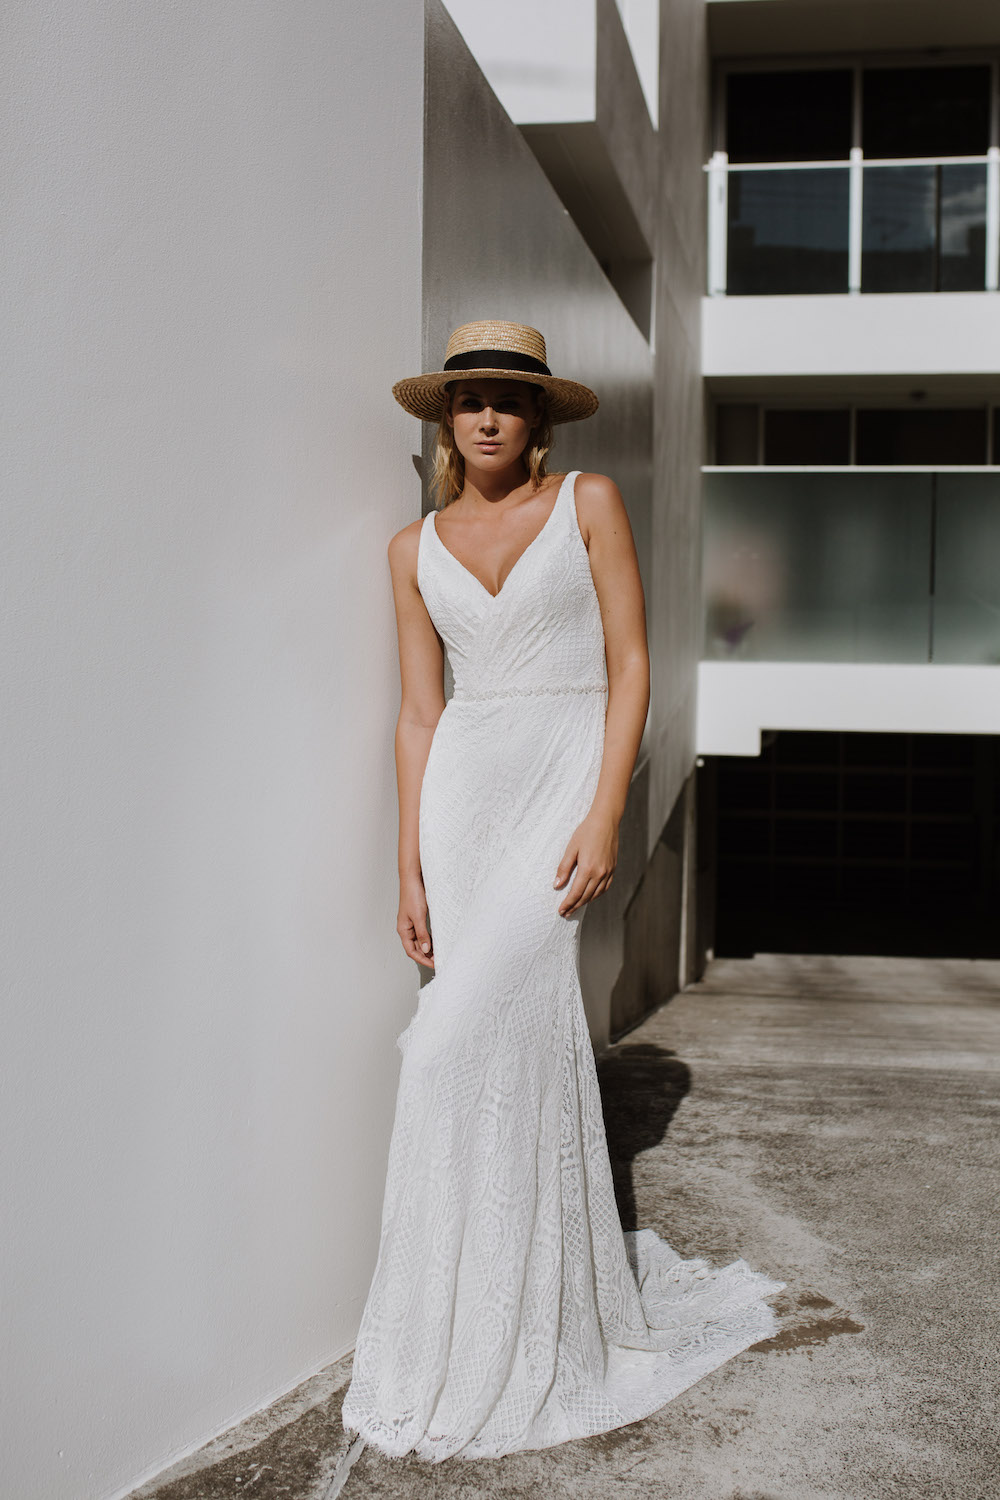 Posie wedding dress by Daisy Brides featured on LOVE FIND CO.